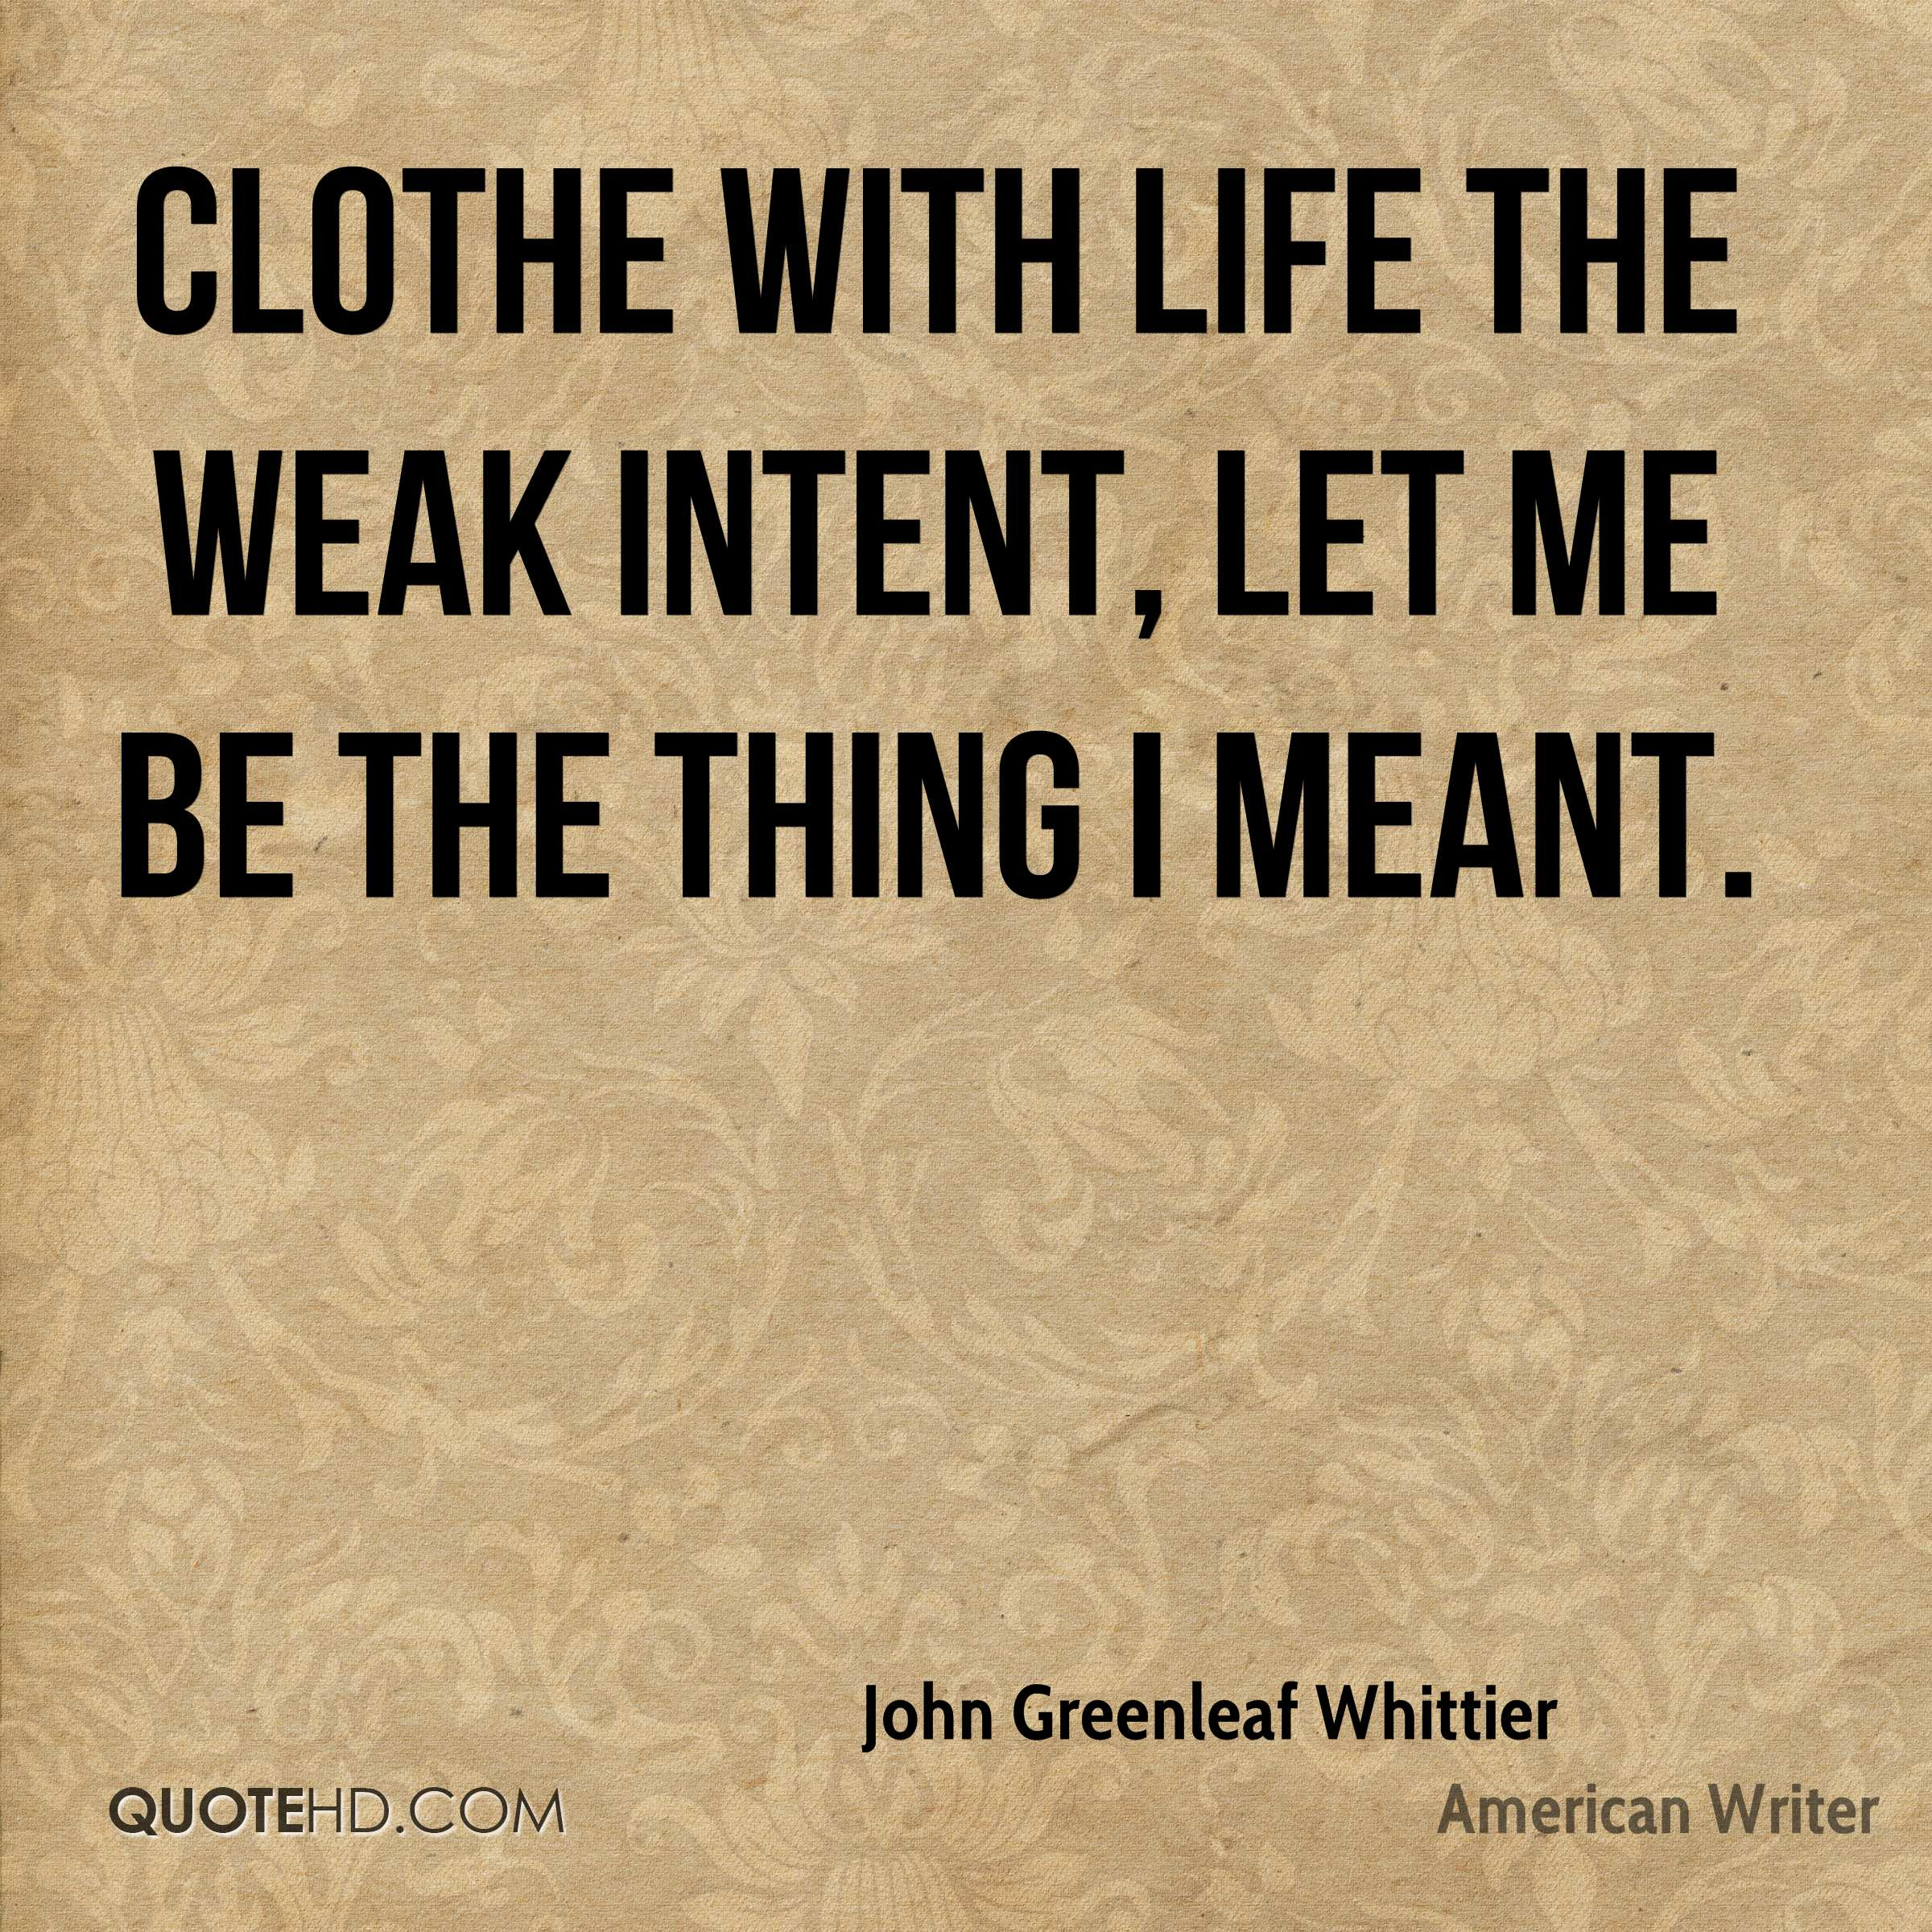 Clothe with life the weak intent, let me be the thing I meant.